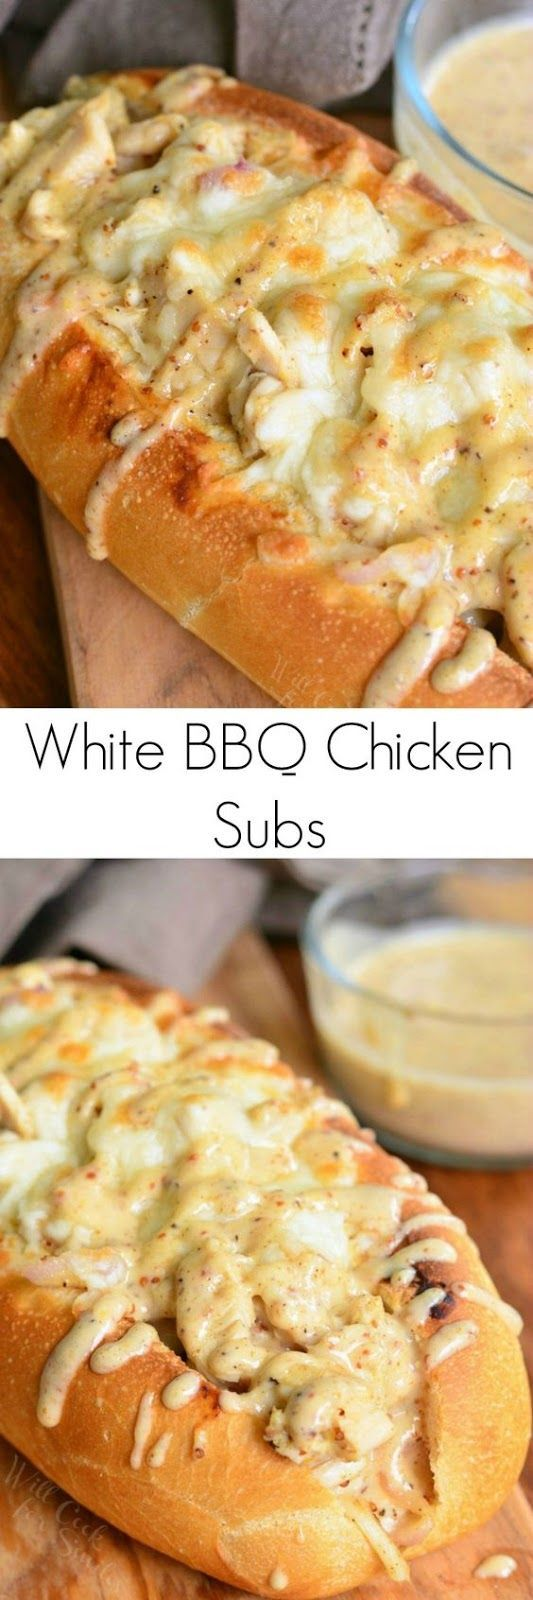 INGREDIENTS White BBQ Sauce: ½ cup mayo 2 Tbsp white vinegar ½ Tbsp fresh cracked white pepper ½ Tbsp Creole mustard ½ ts...